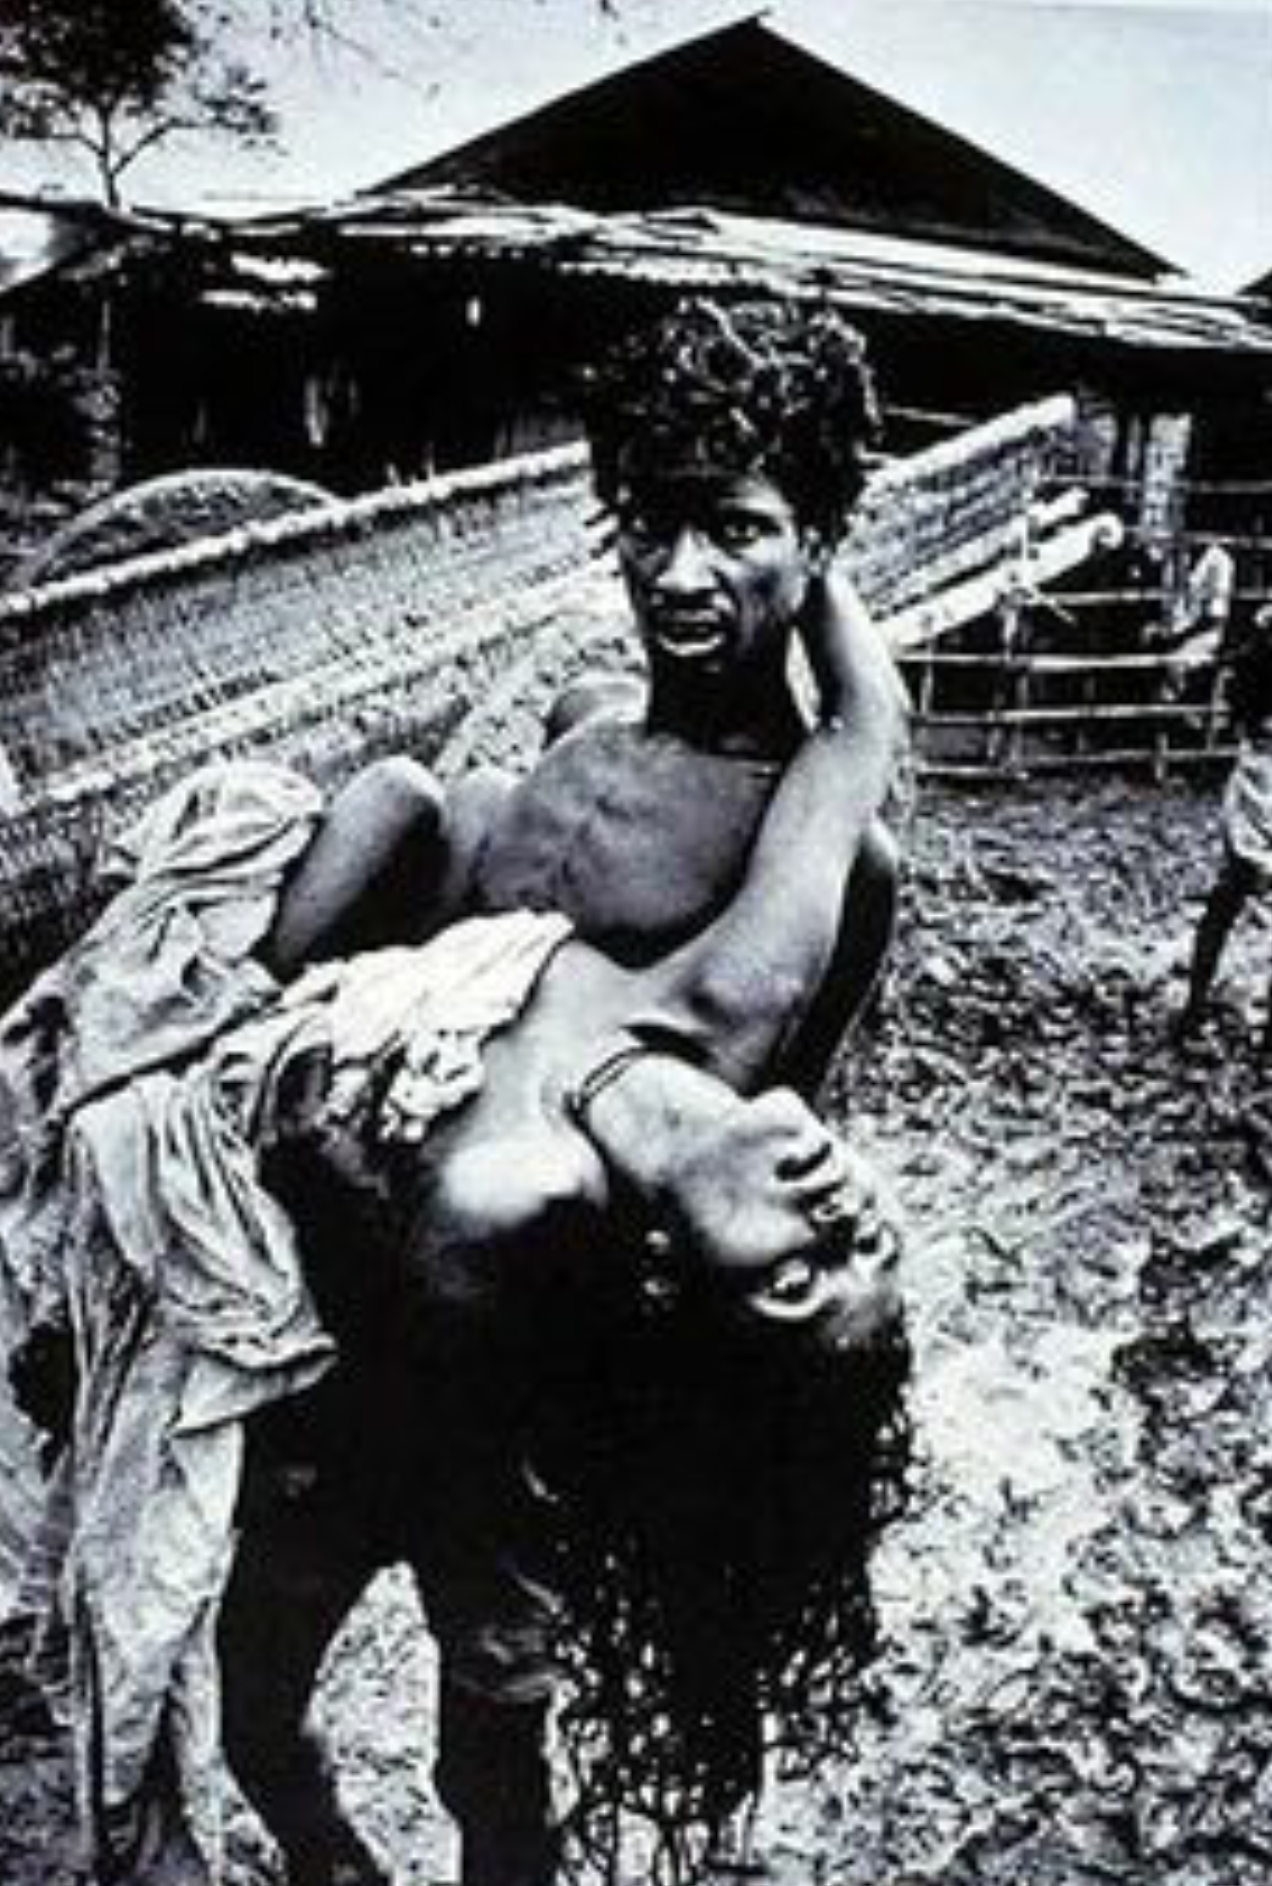 a view on the genocide in china during the 50s and 60s The 50s and 60s in a  ngo dinh diem in south vietnam, chiang-kai shek in china/taiwan, galtieri in argentina, marcos in the philippines, just off the top of my.